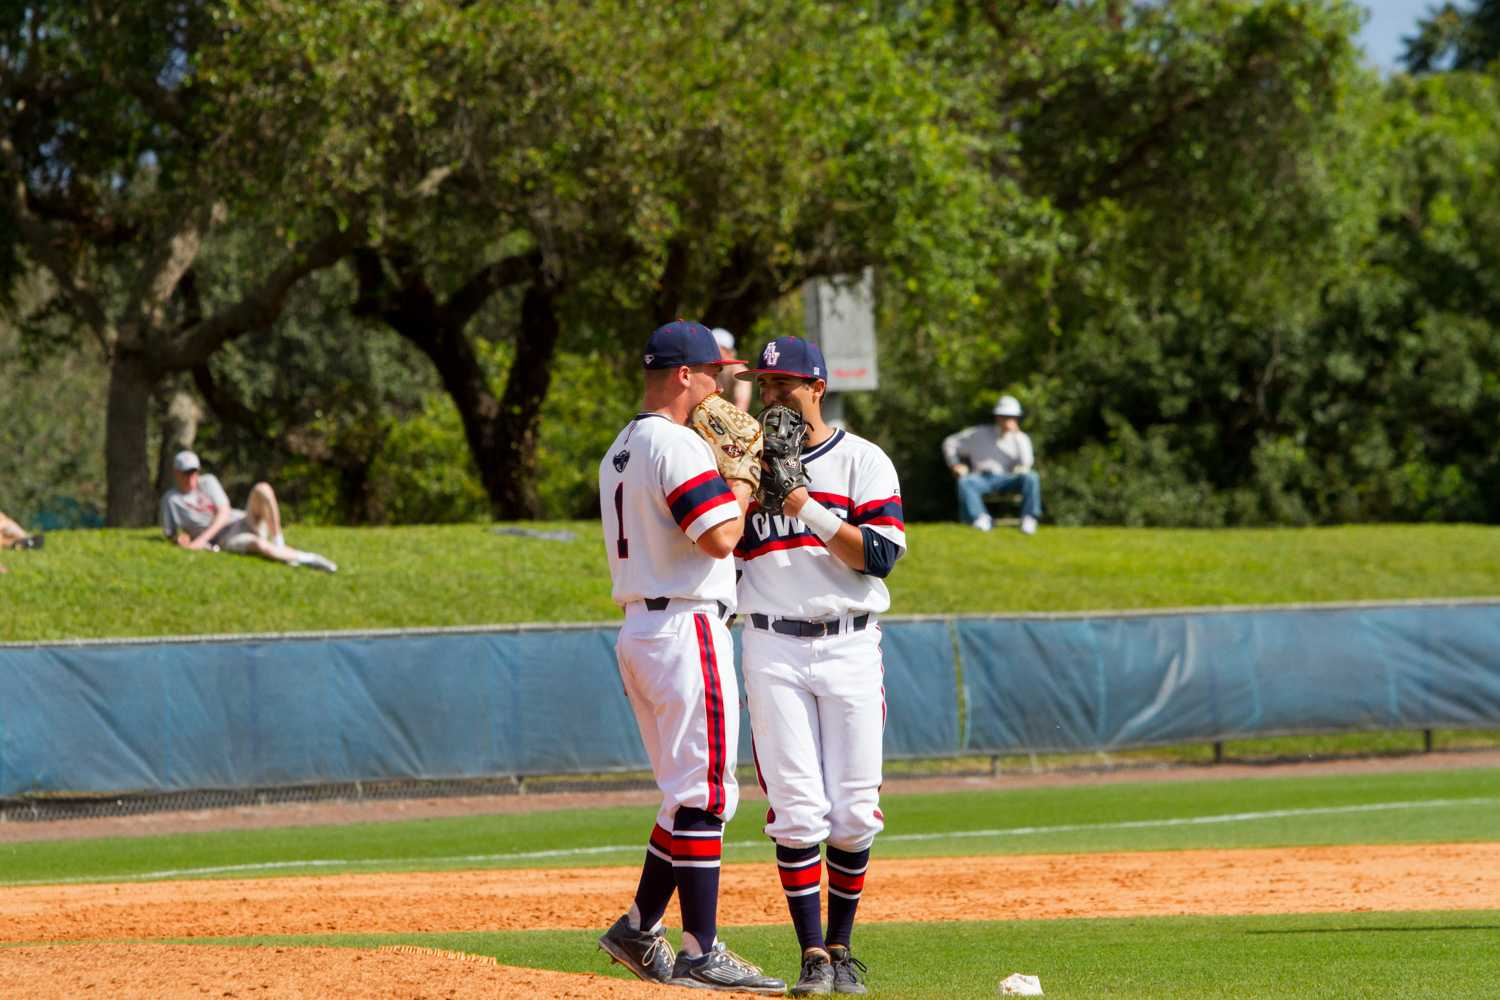 Senior pitcher Bo Logan (1) talks with a teammate in the top of the ninth inning. Logan had the save in The Owls' 2-1 win against The Buckeyes.